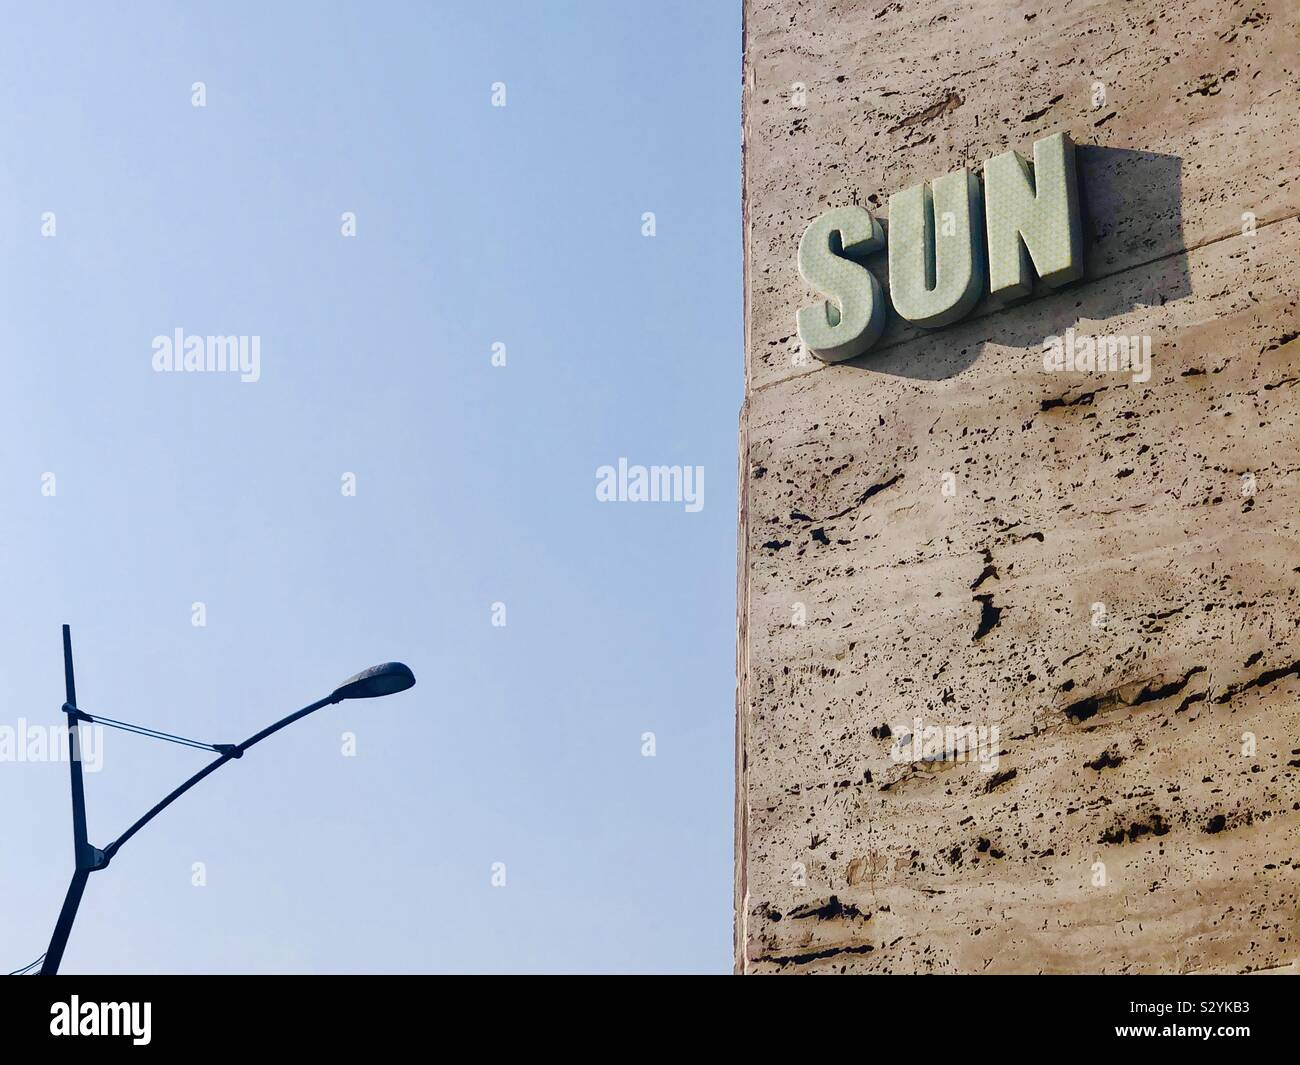 Old sign reading SUN on the side of a building against a blue sky Stock Photo